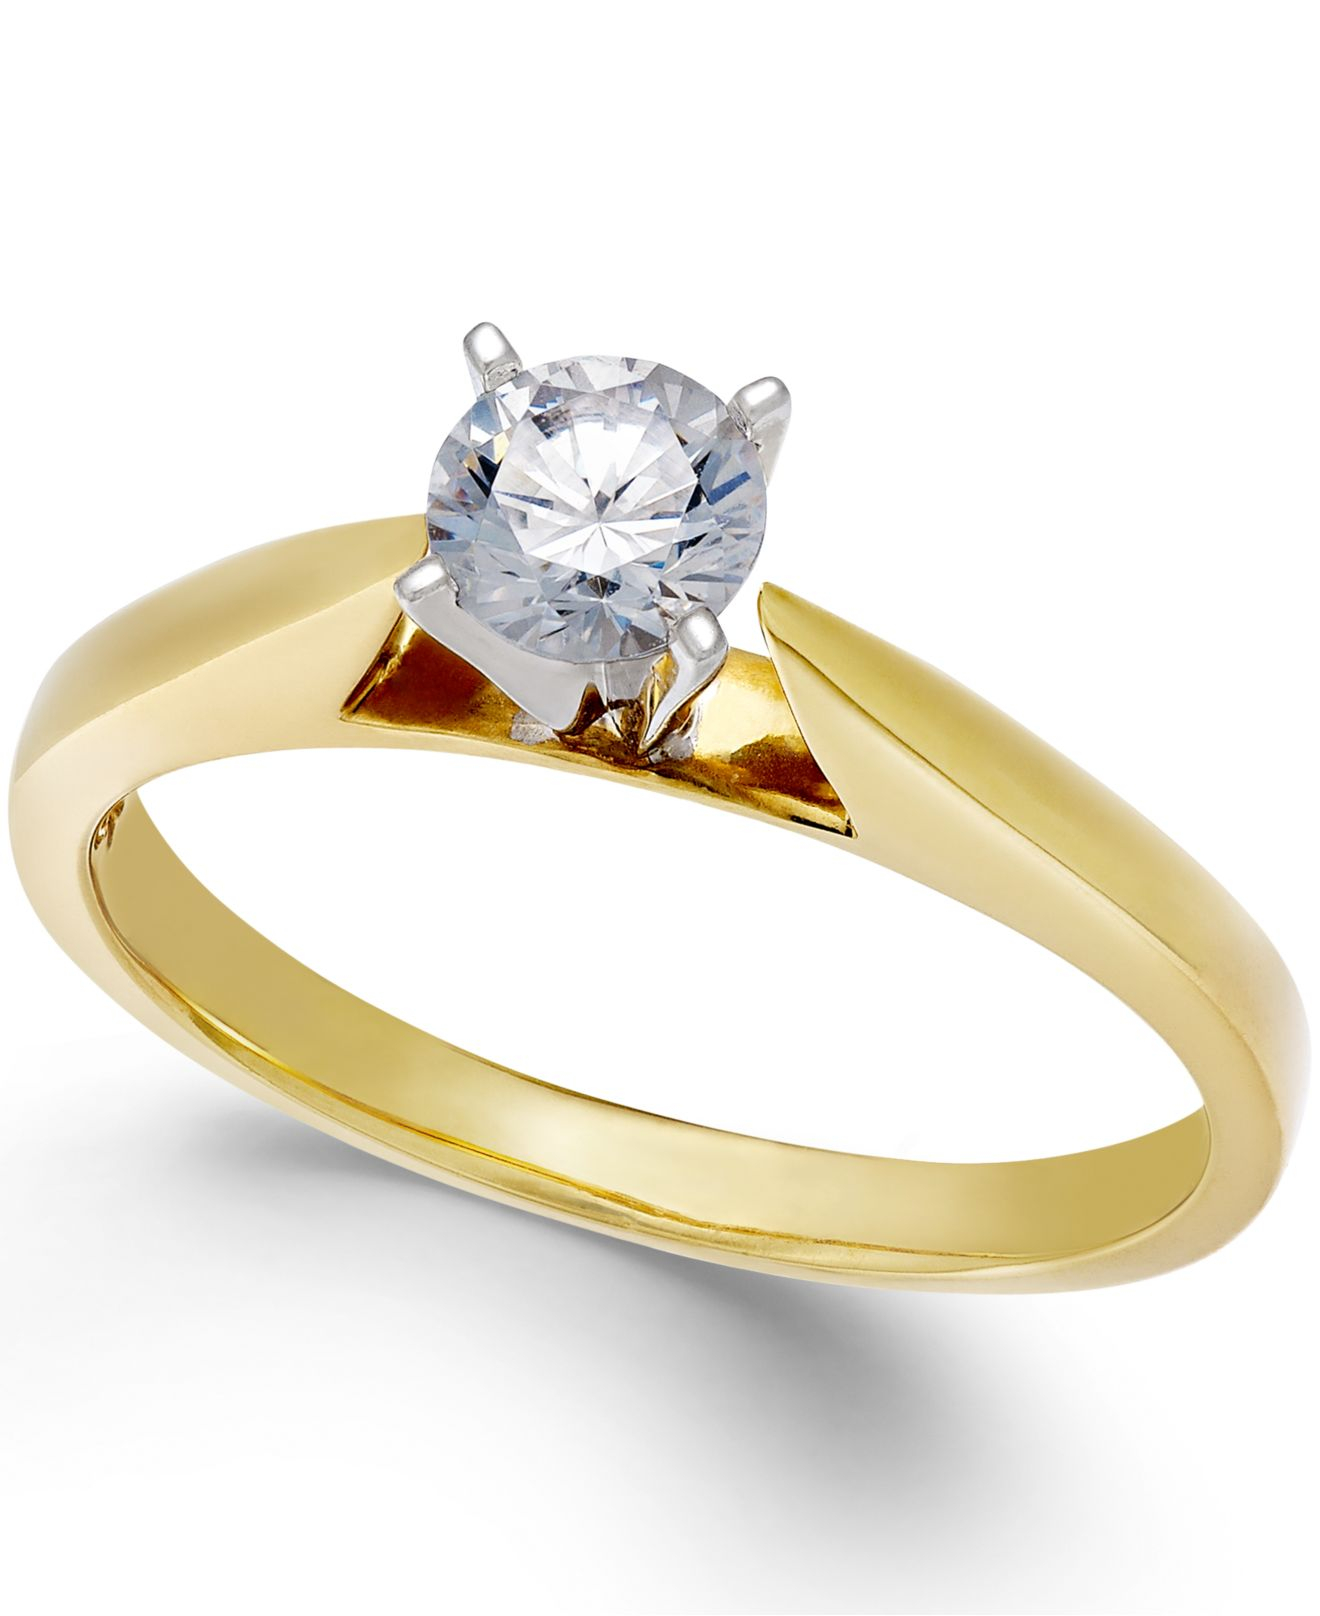 Macy s Engagement Ring Certified Diamond 1 2 Ct T w And 14k White Go